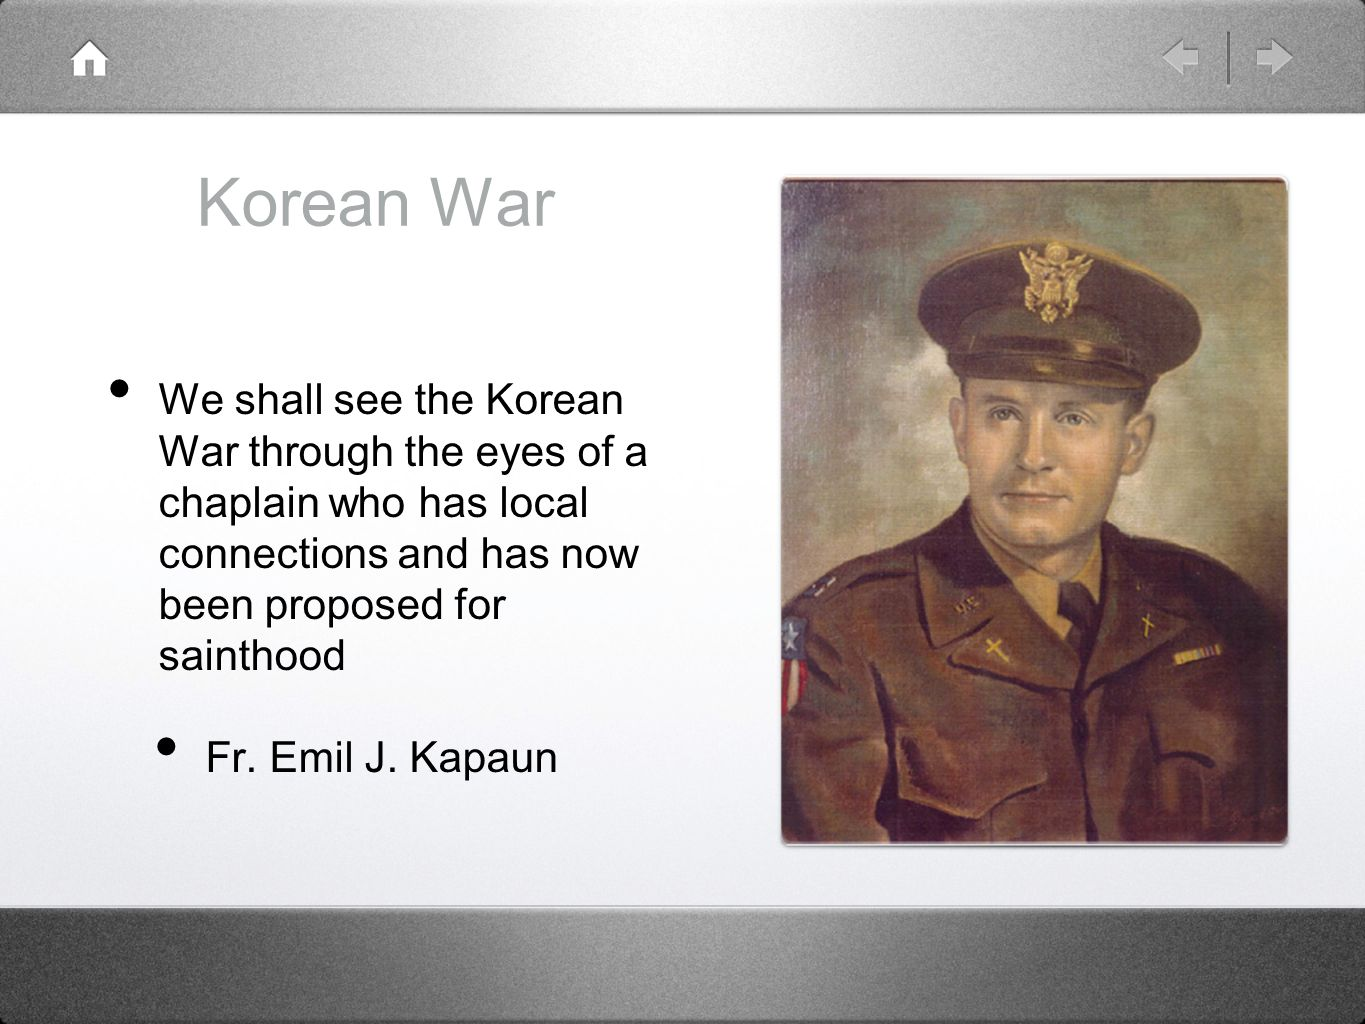 Korean War We shall see the Korean War through the eyes of a chaplain who has local connections and has now been proposed for sainthood.